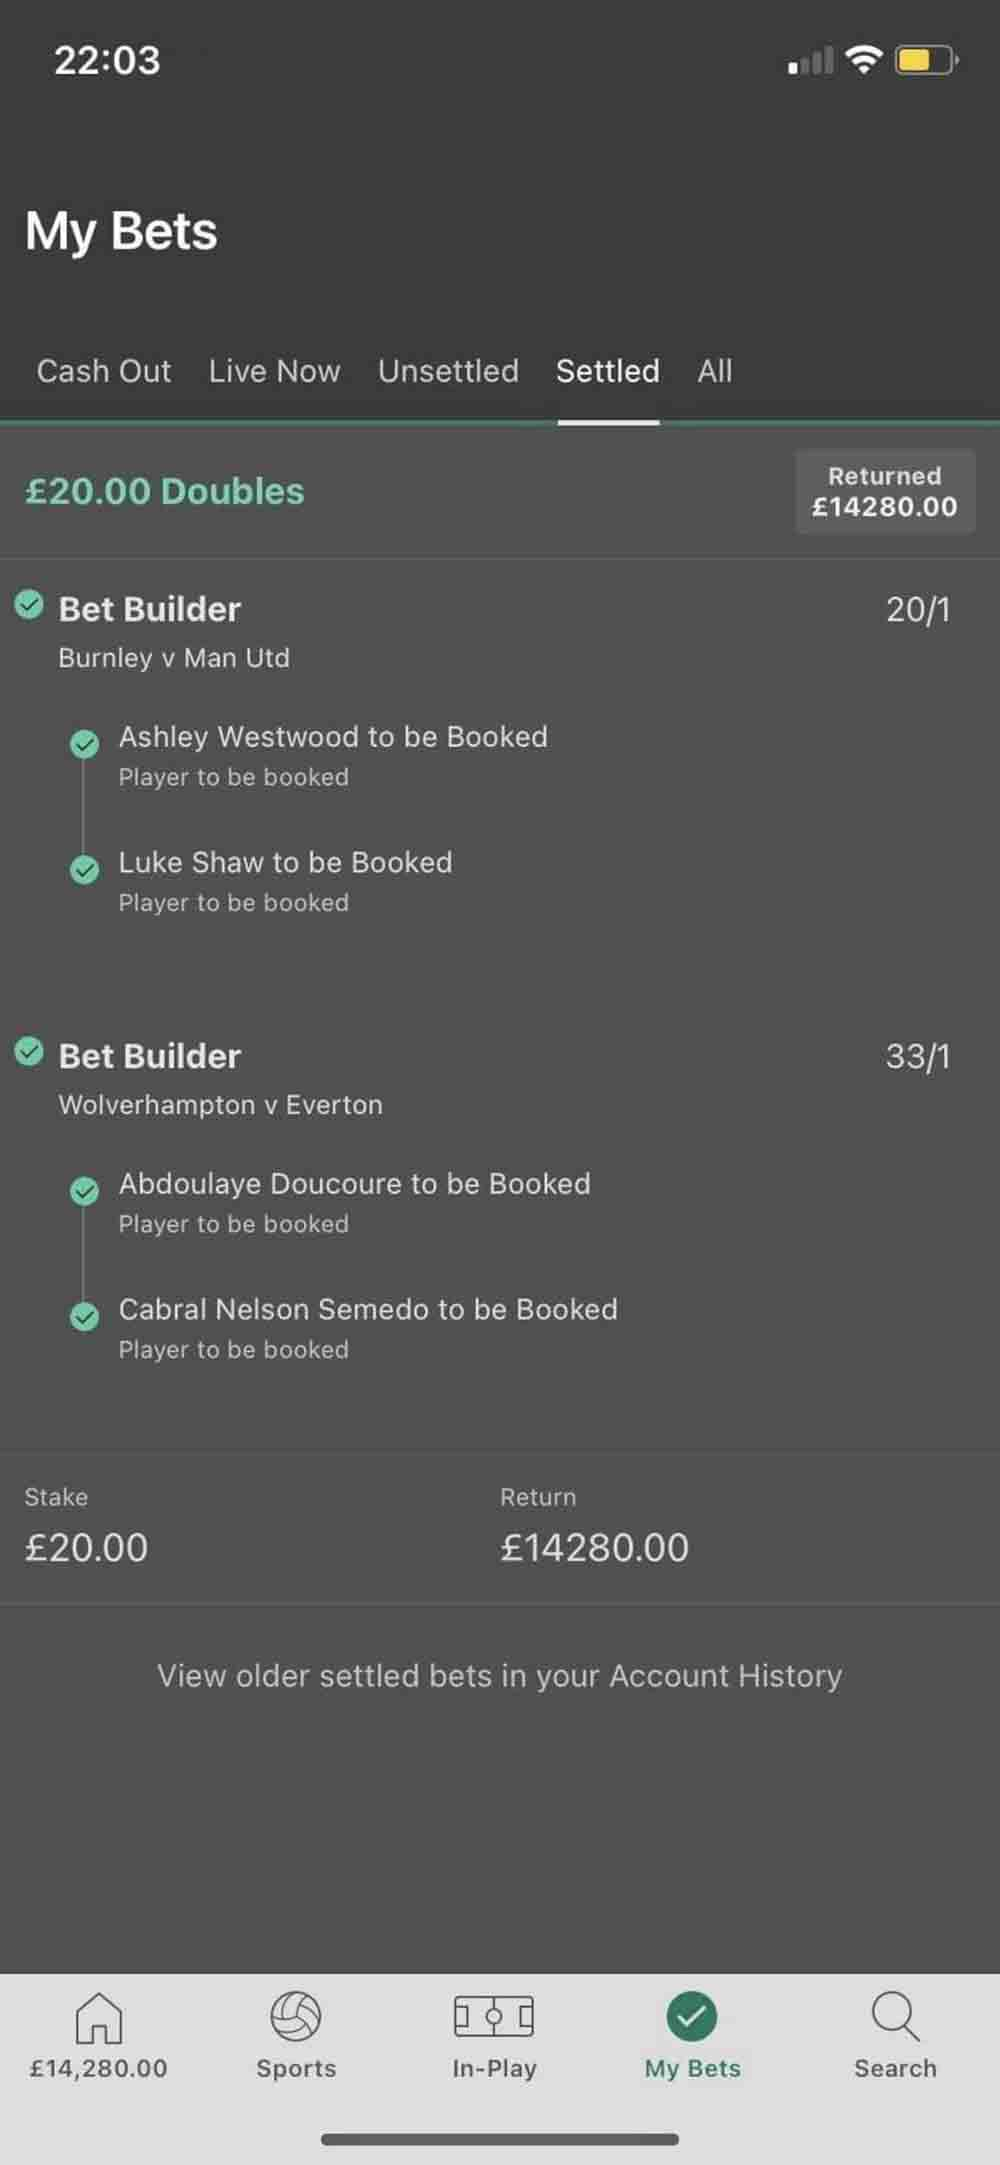 FOUR friends have managed to scoop £14,000 on a football bet - Viral News UK